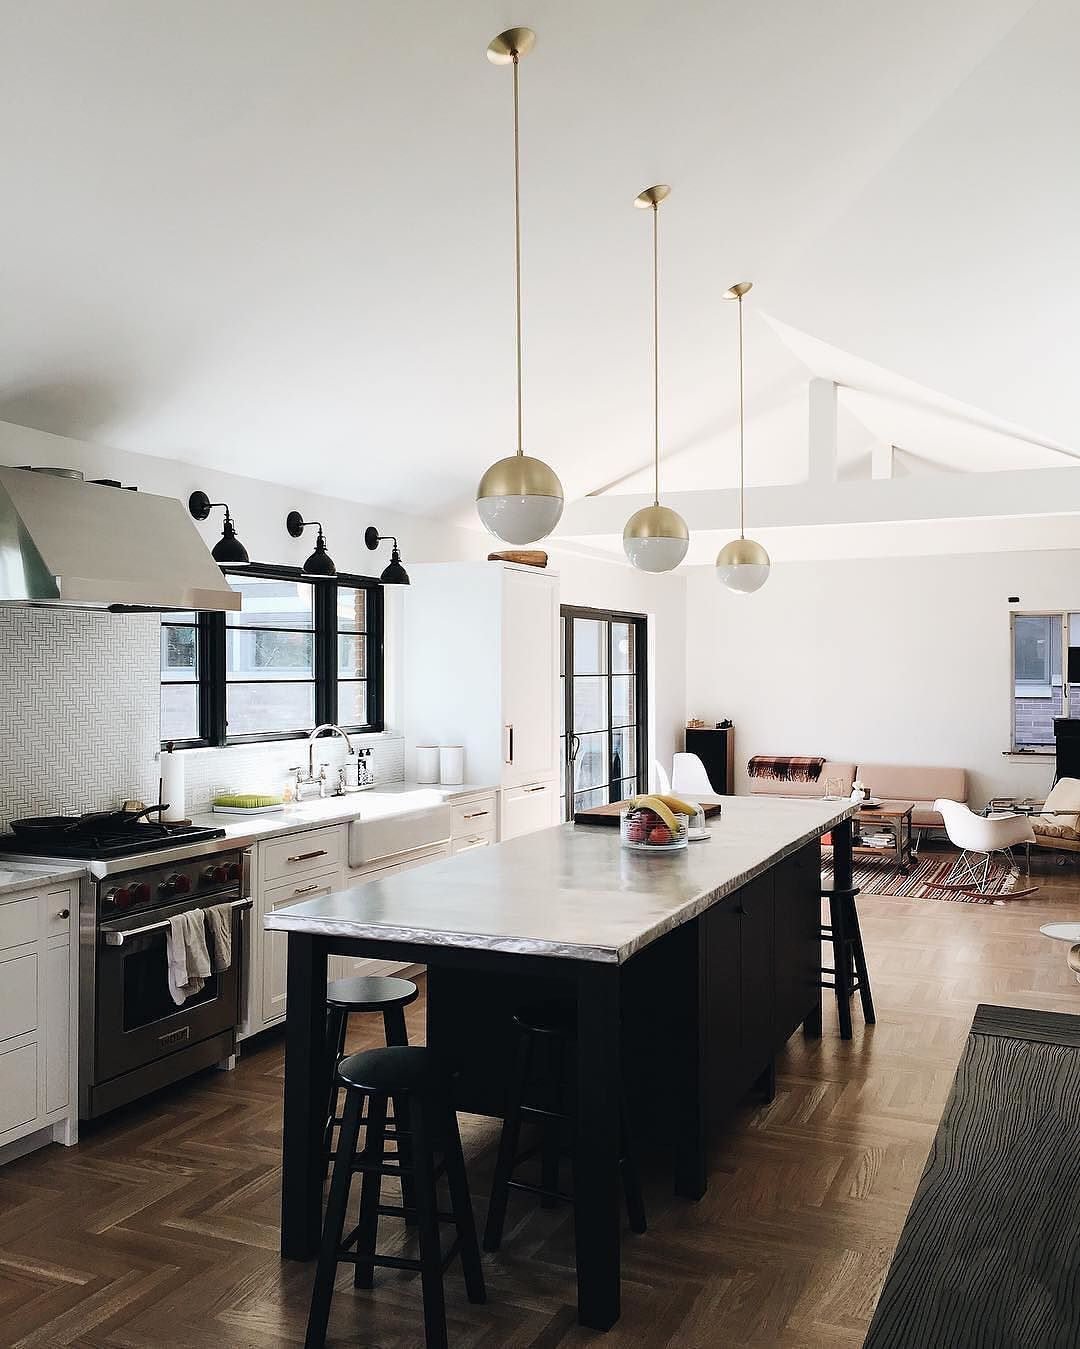 Cool Calm And Functional Kitchen: This Bright View Of @maurastoffer's Kitchen In Chicago Is